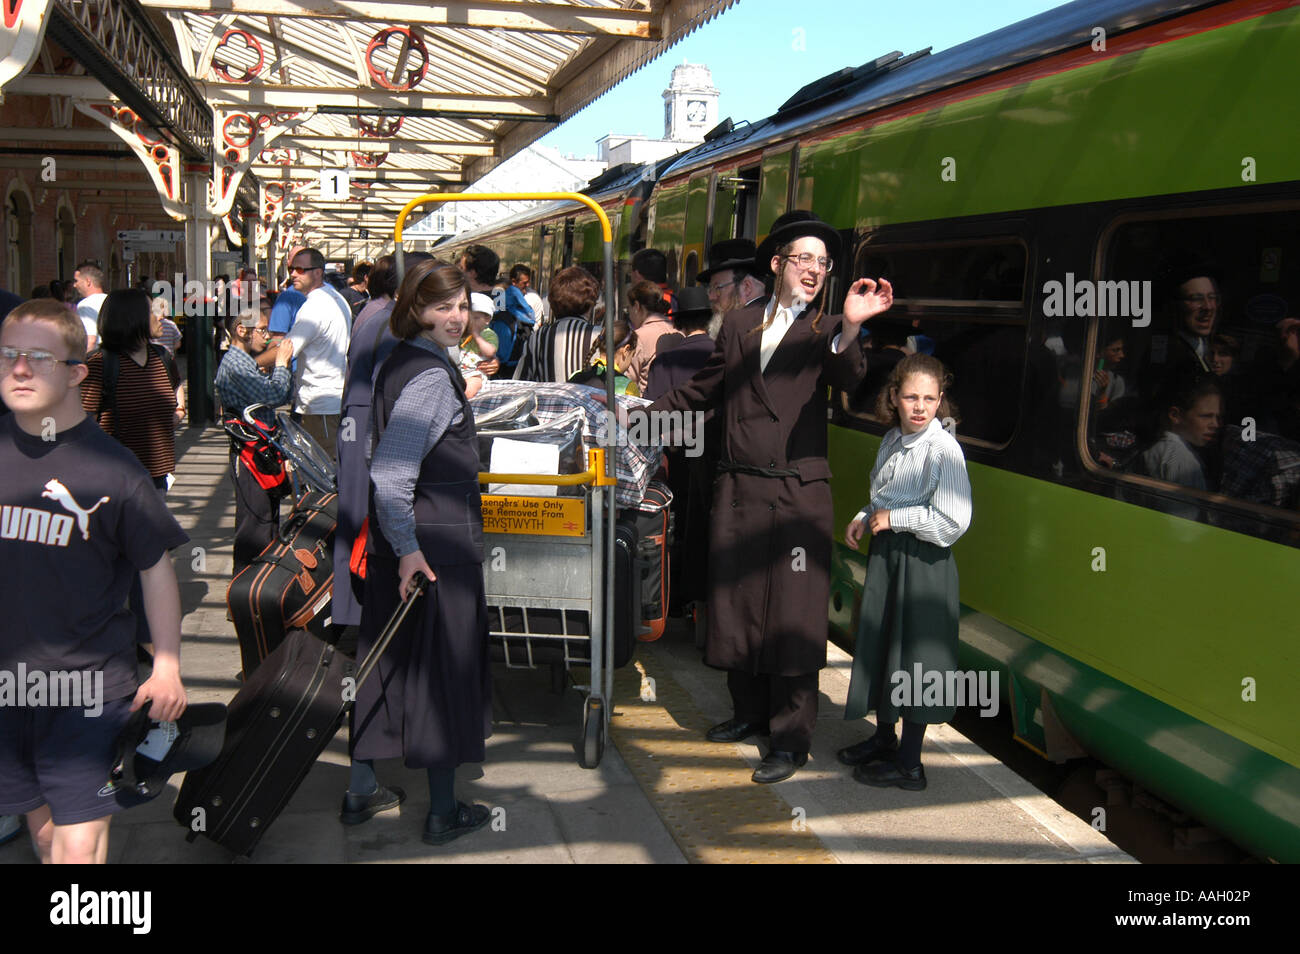 Families of orthodox hassidic jews on annual holiday in Aberystwyth railway station catching the train home to London - Stock Image